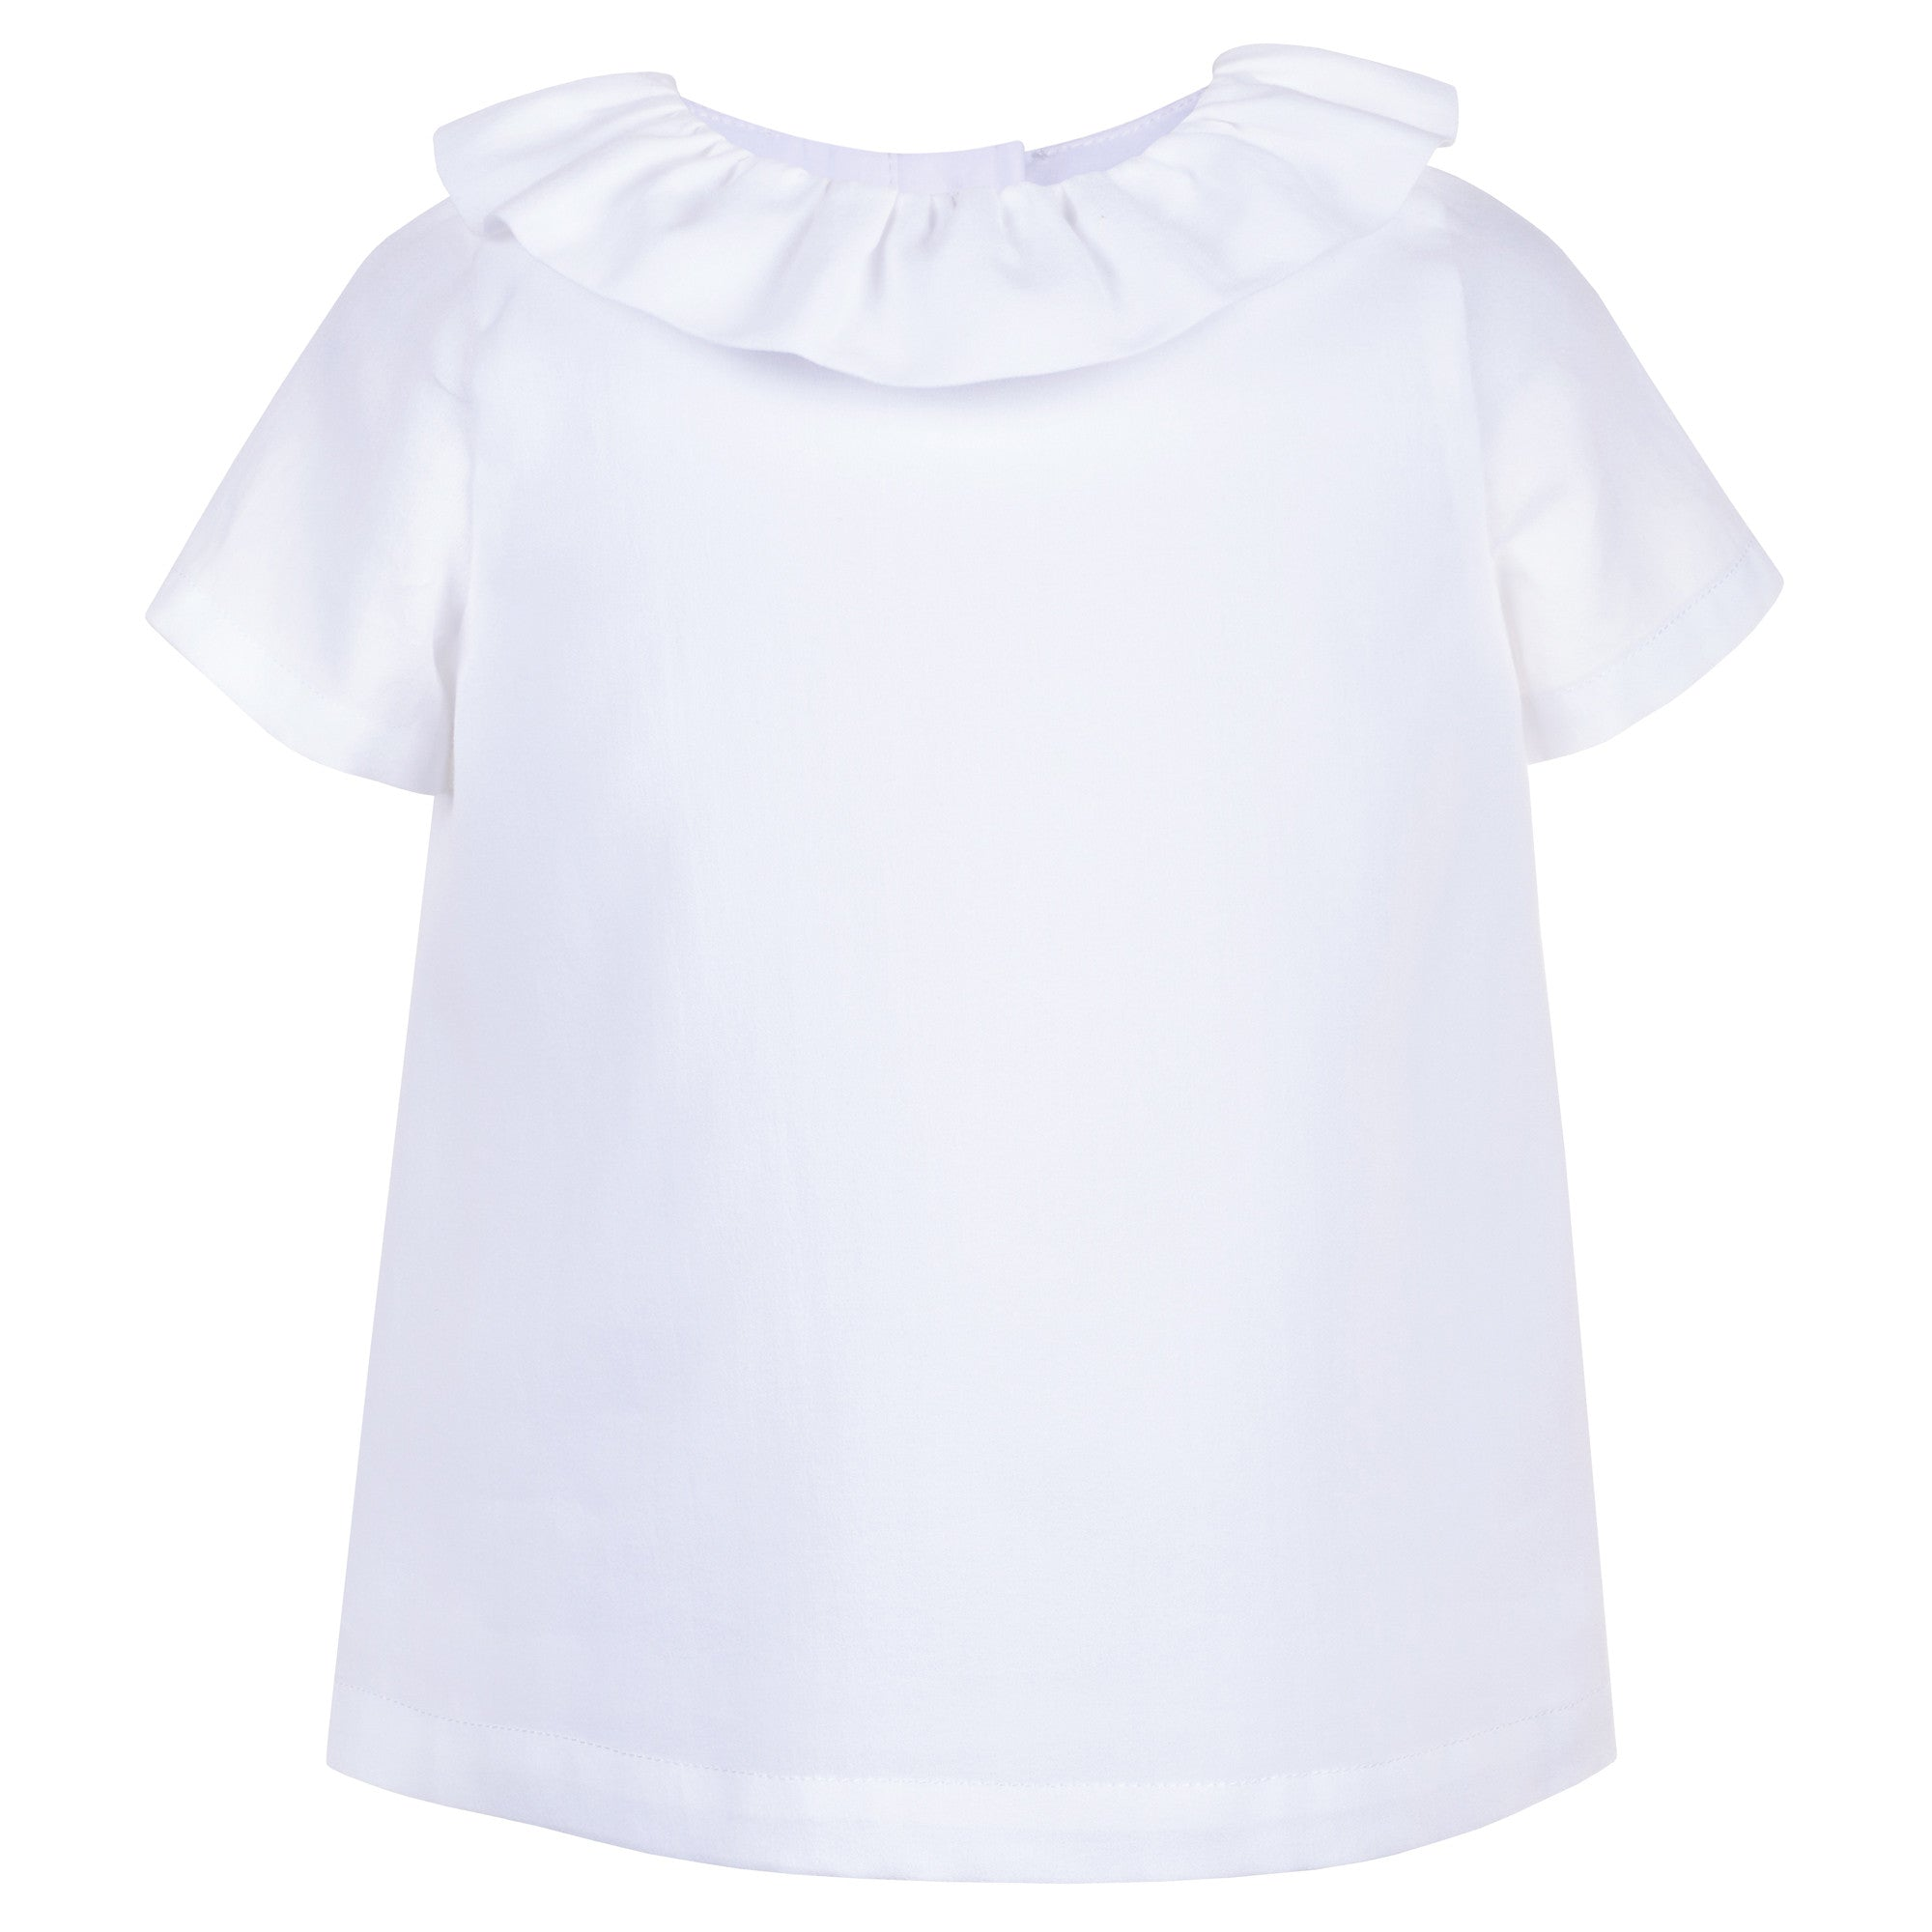 Ruffle Neck Short Sleeve Blouse